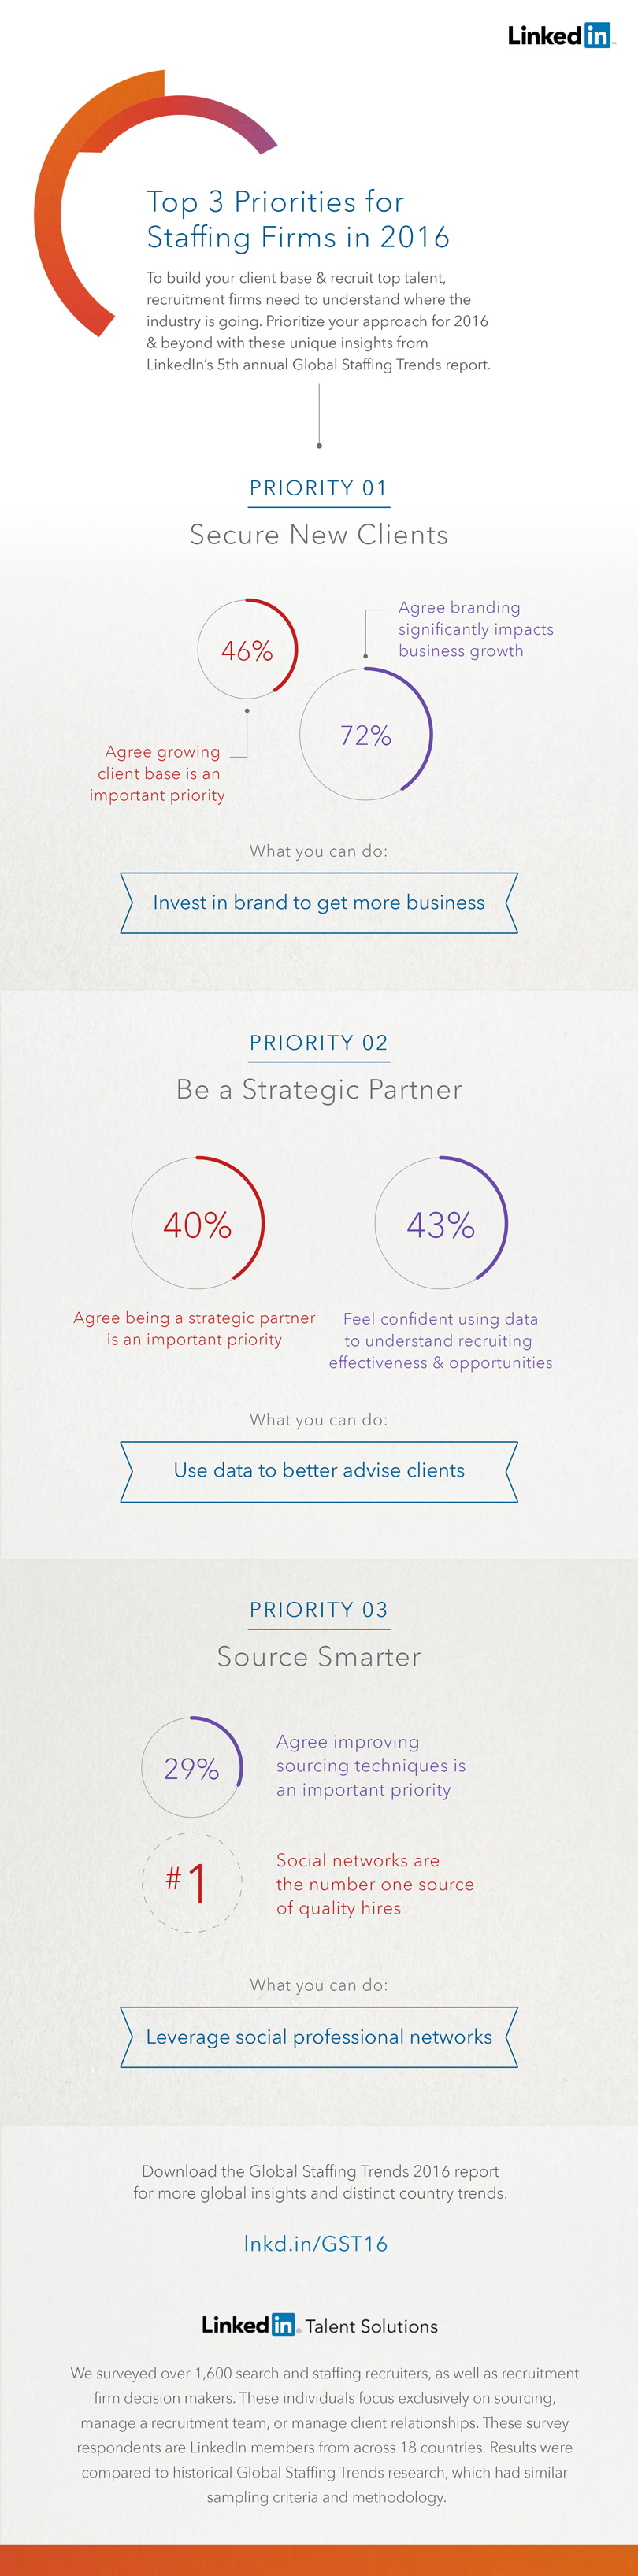 global staffing trends infographic